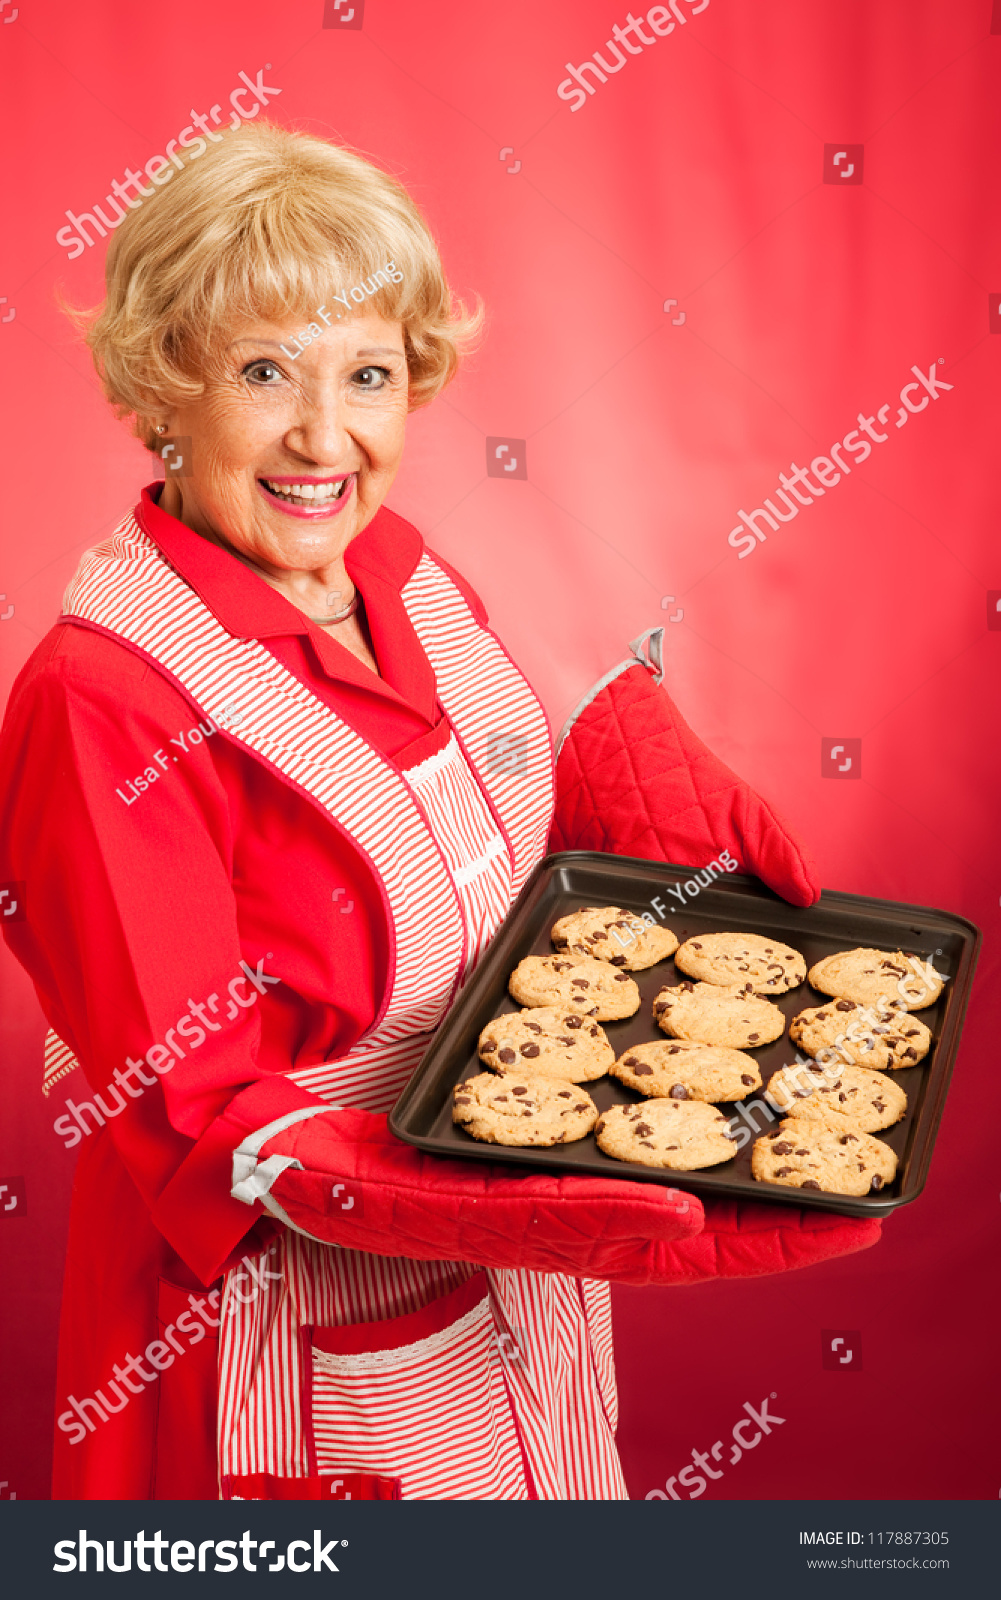 Sweet homemaker grandma holding a tray of fresh baked chocolate chip